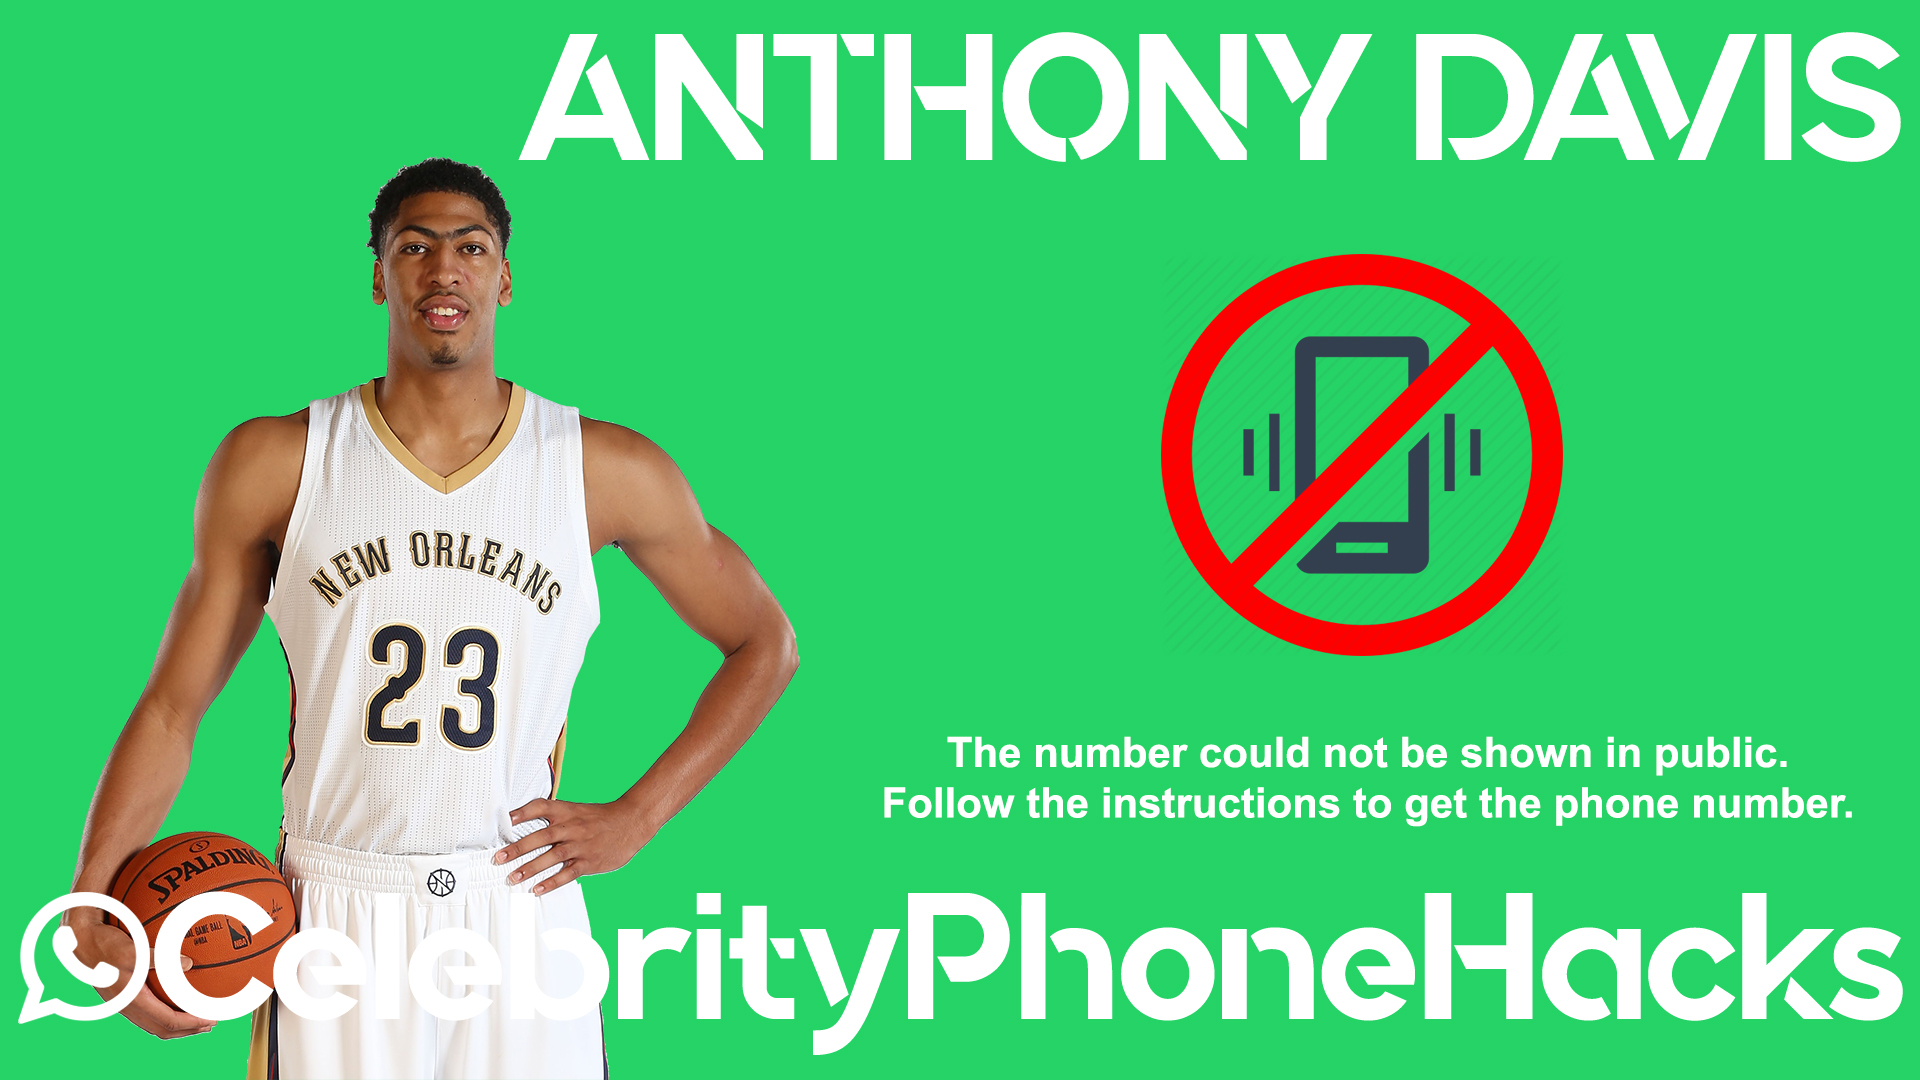 Anthony Davis real phone number 2019 whatsapp hacked leaked